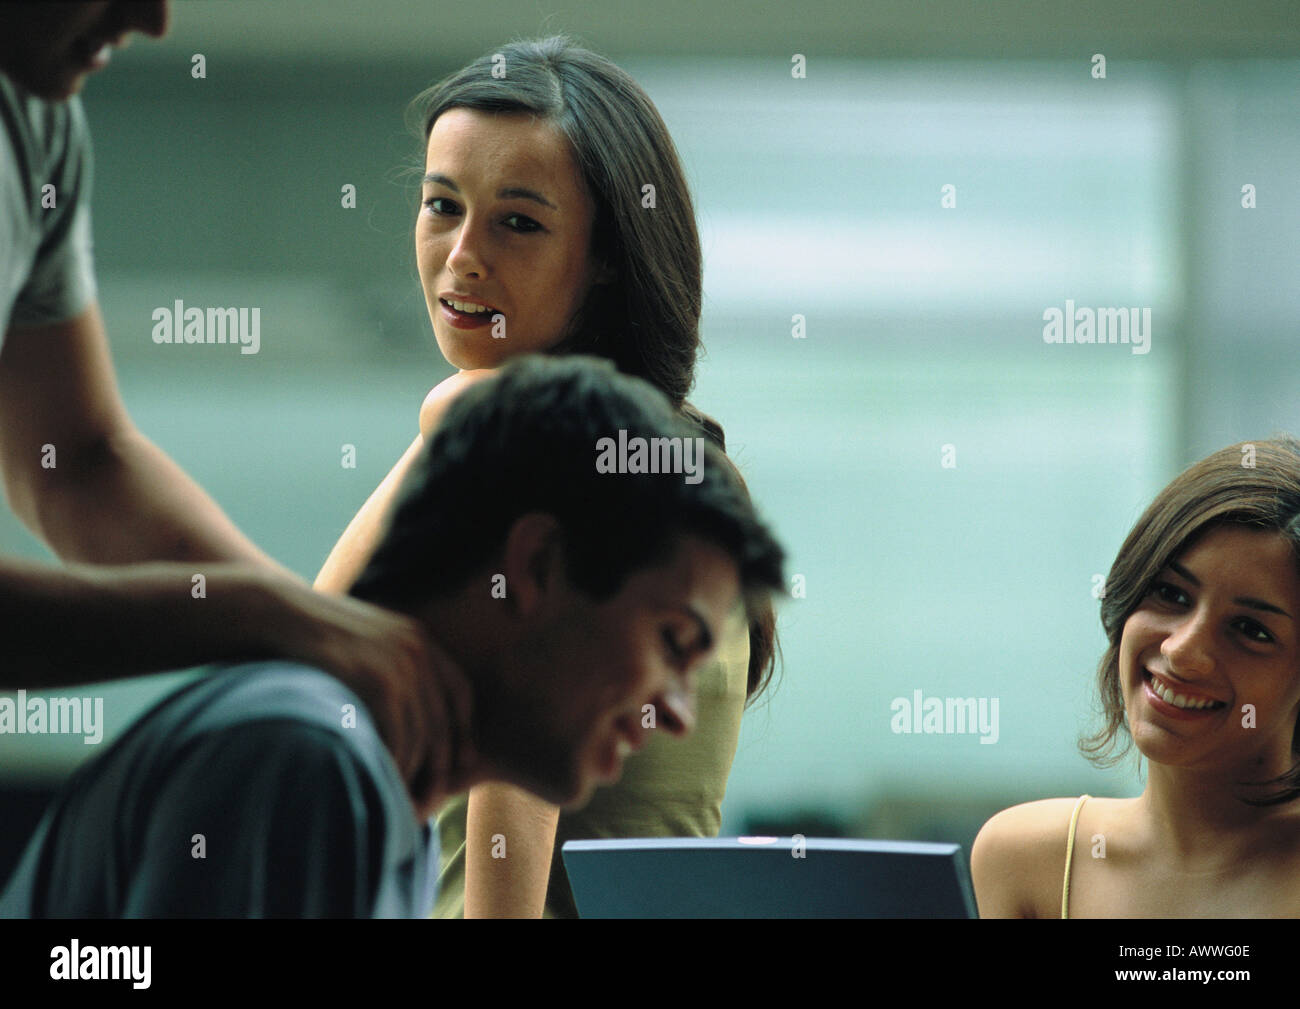 Men and woman together - Stock Image